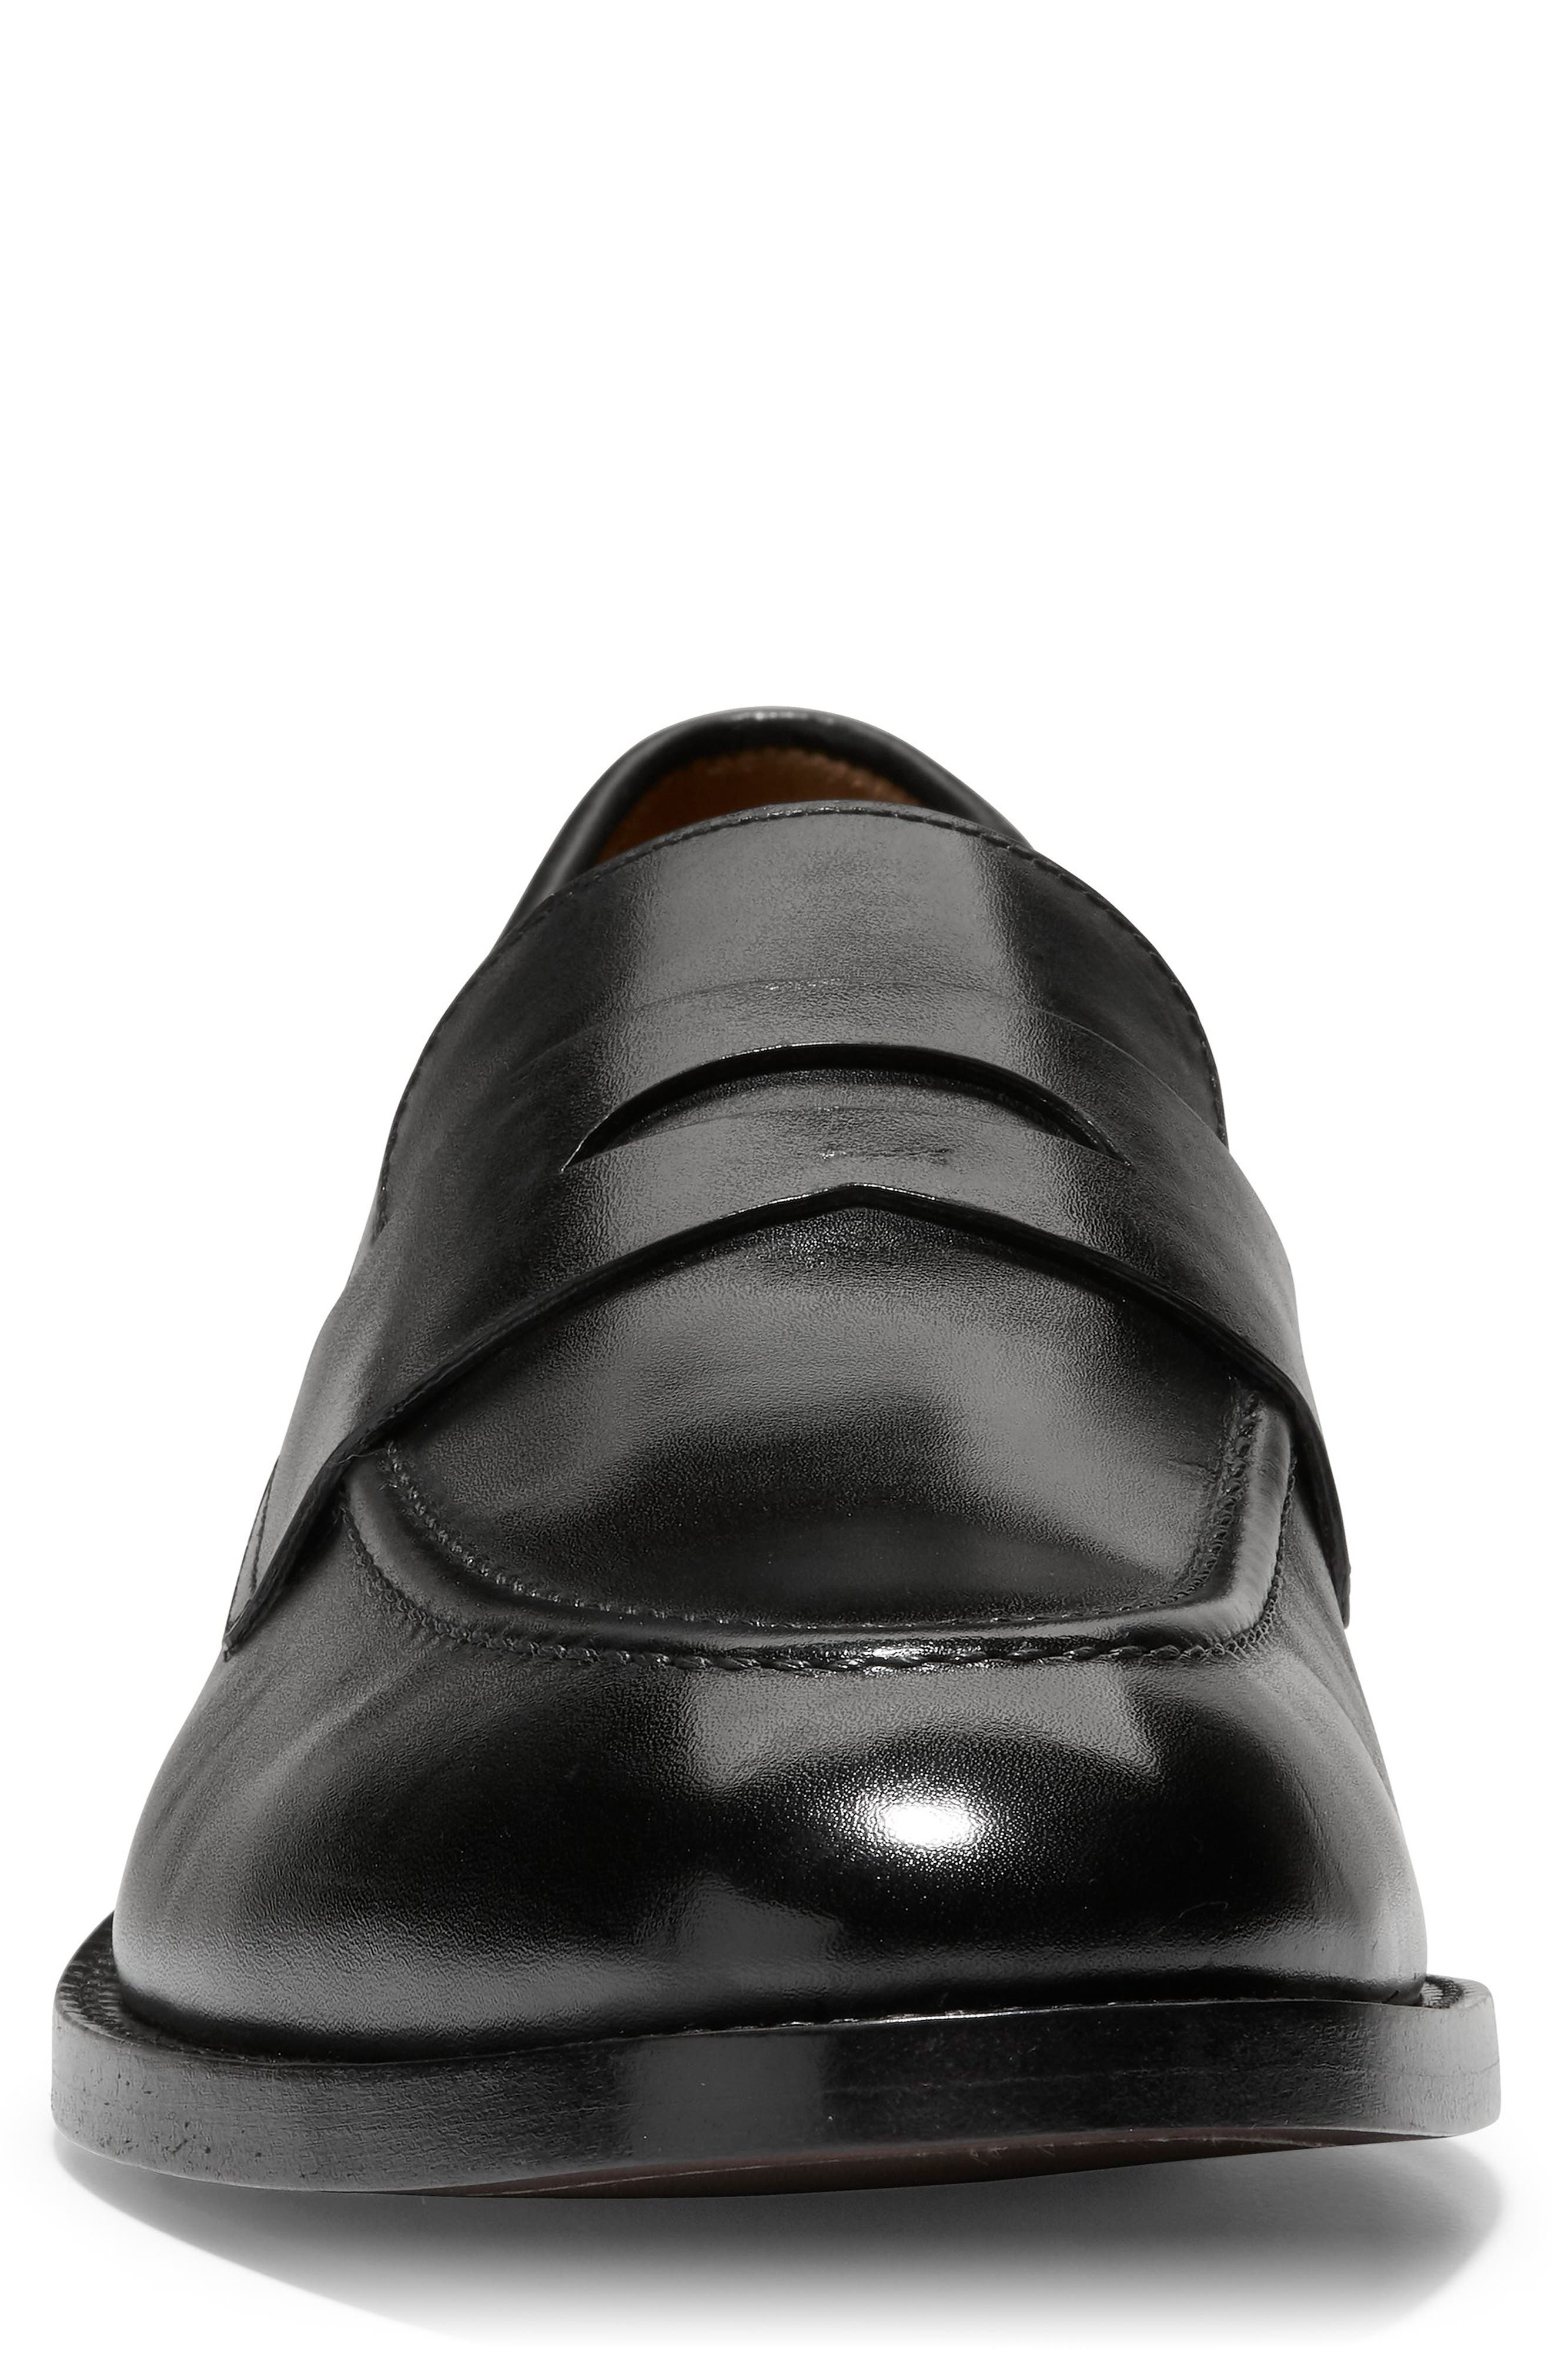 American Classics Kneeland Penny Loafer,                             Alternate thumbnail 4, color,                             BLACK LEATHER